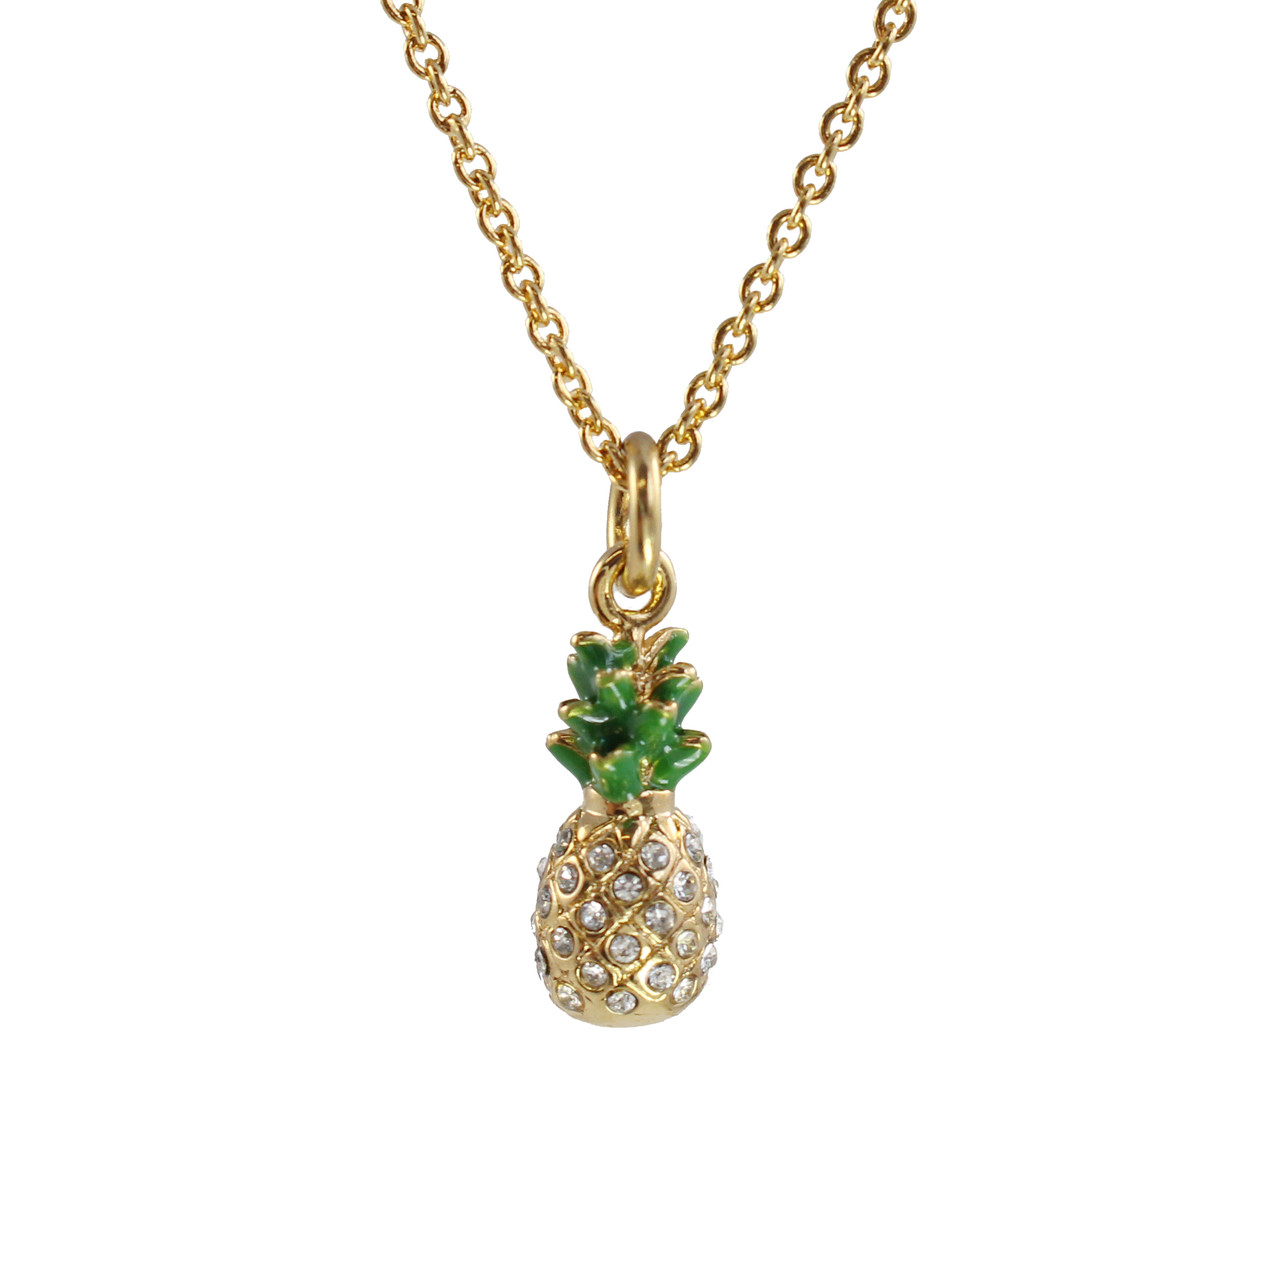 d64abbd474 Pineapple Necklace, Pave Crystal & Gold - Wildflower + ...